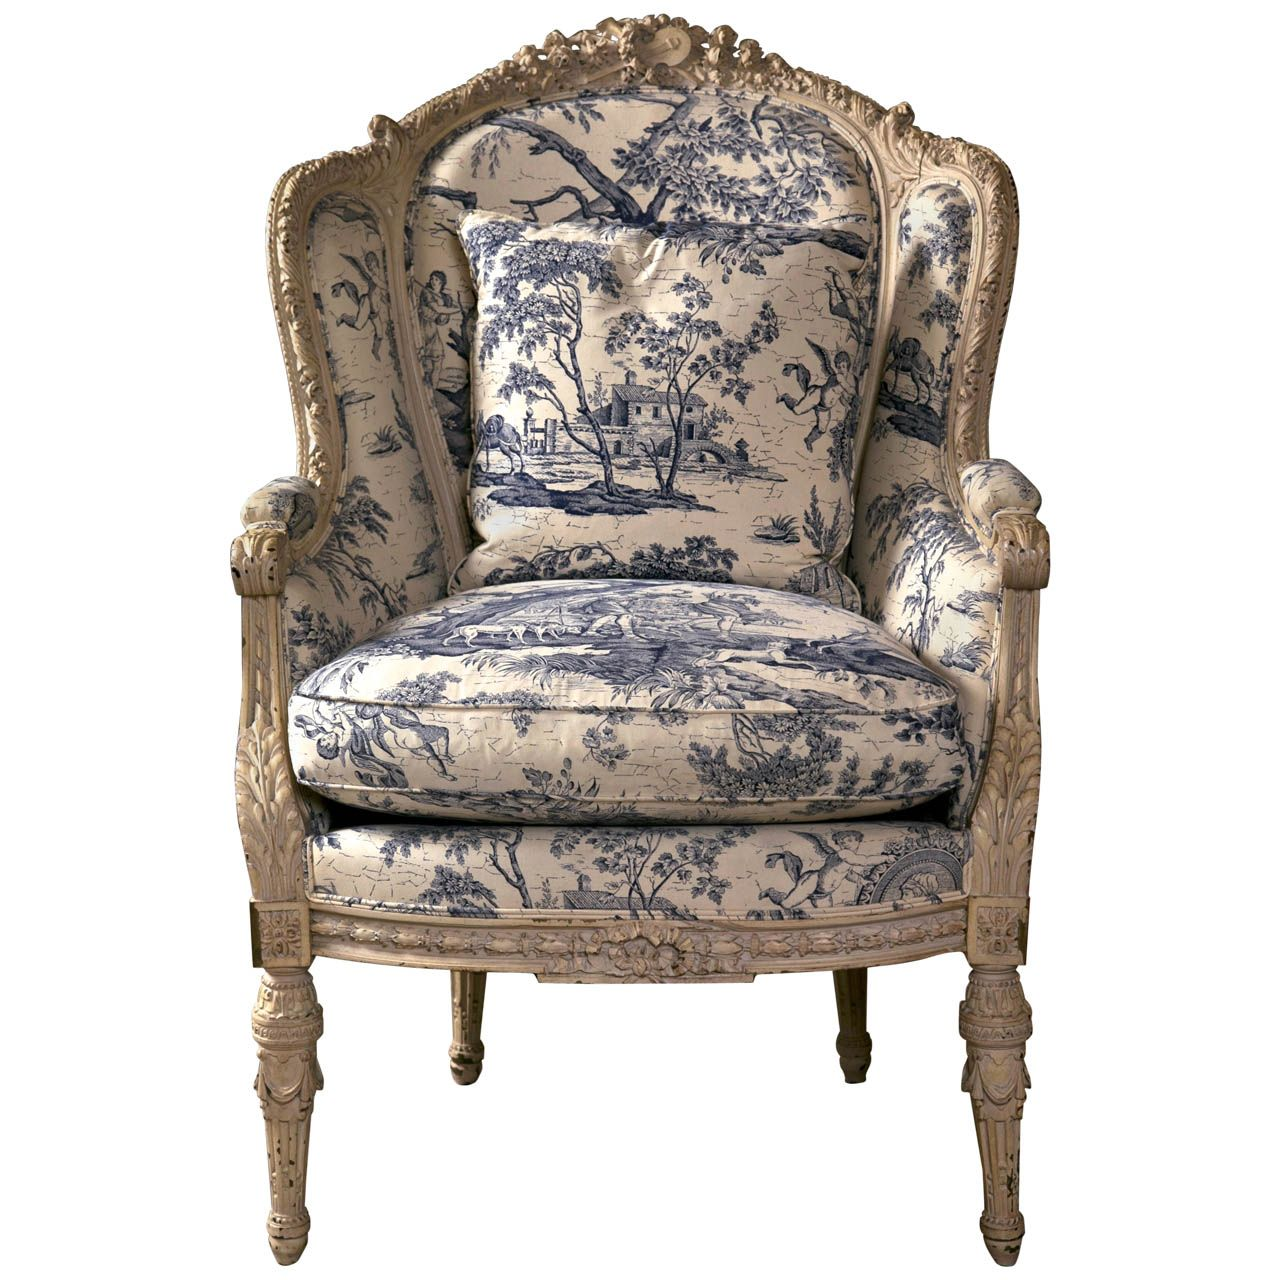 Antique wing chair - 19th C Antique French Wingback Bergere Chair